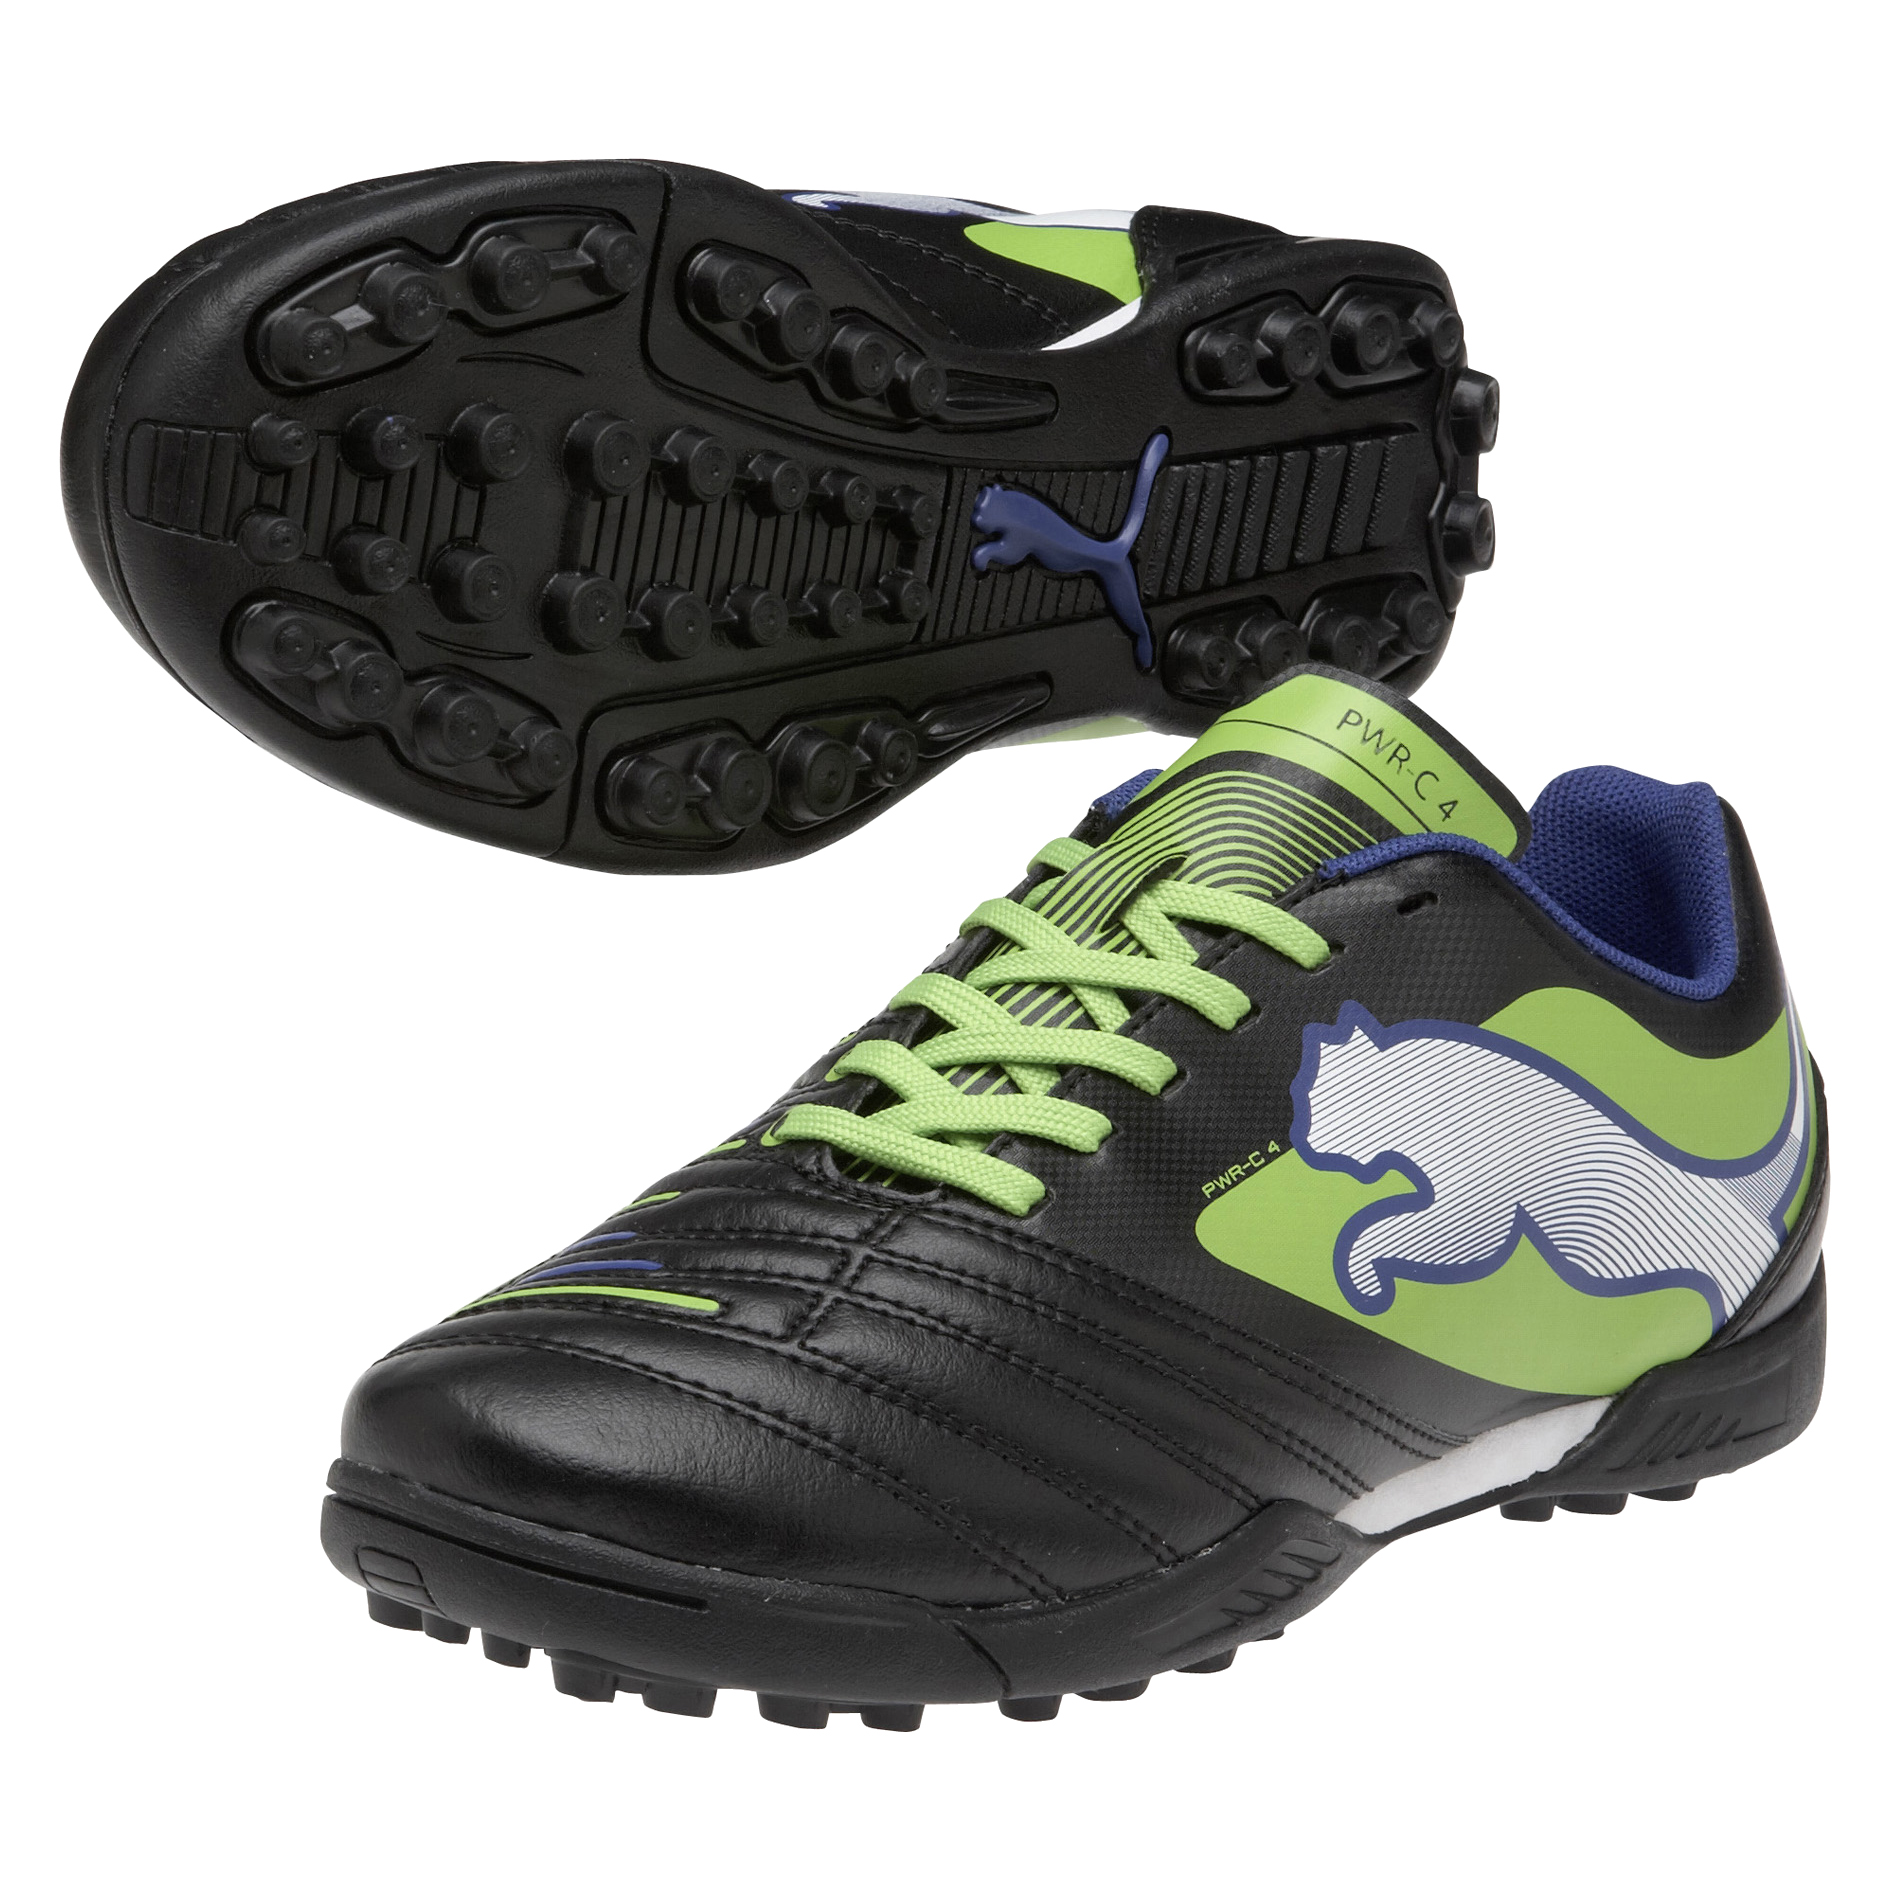 Puma Powercat 4 Astroturf Trainers - Black/Jasmin Green/Monaco Blue - Kids